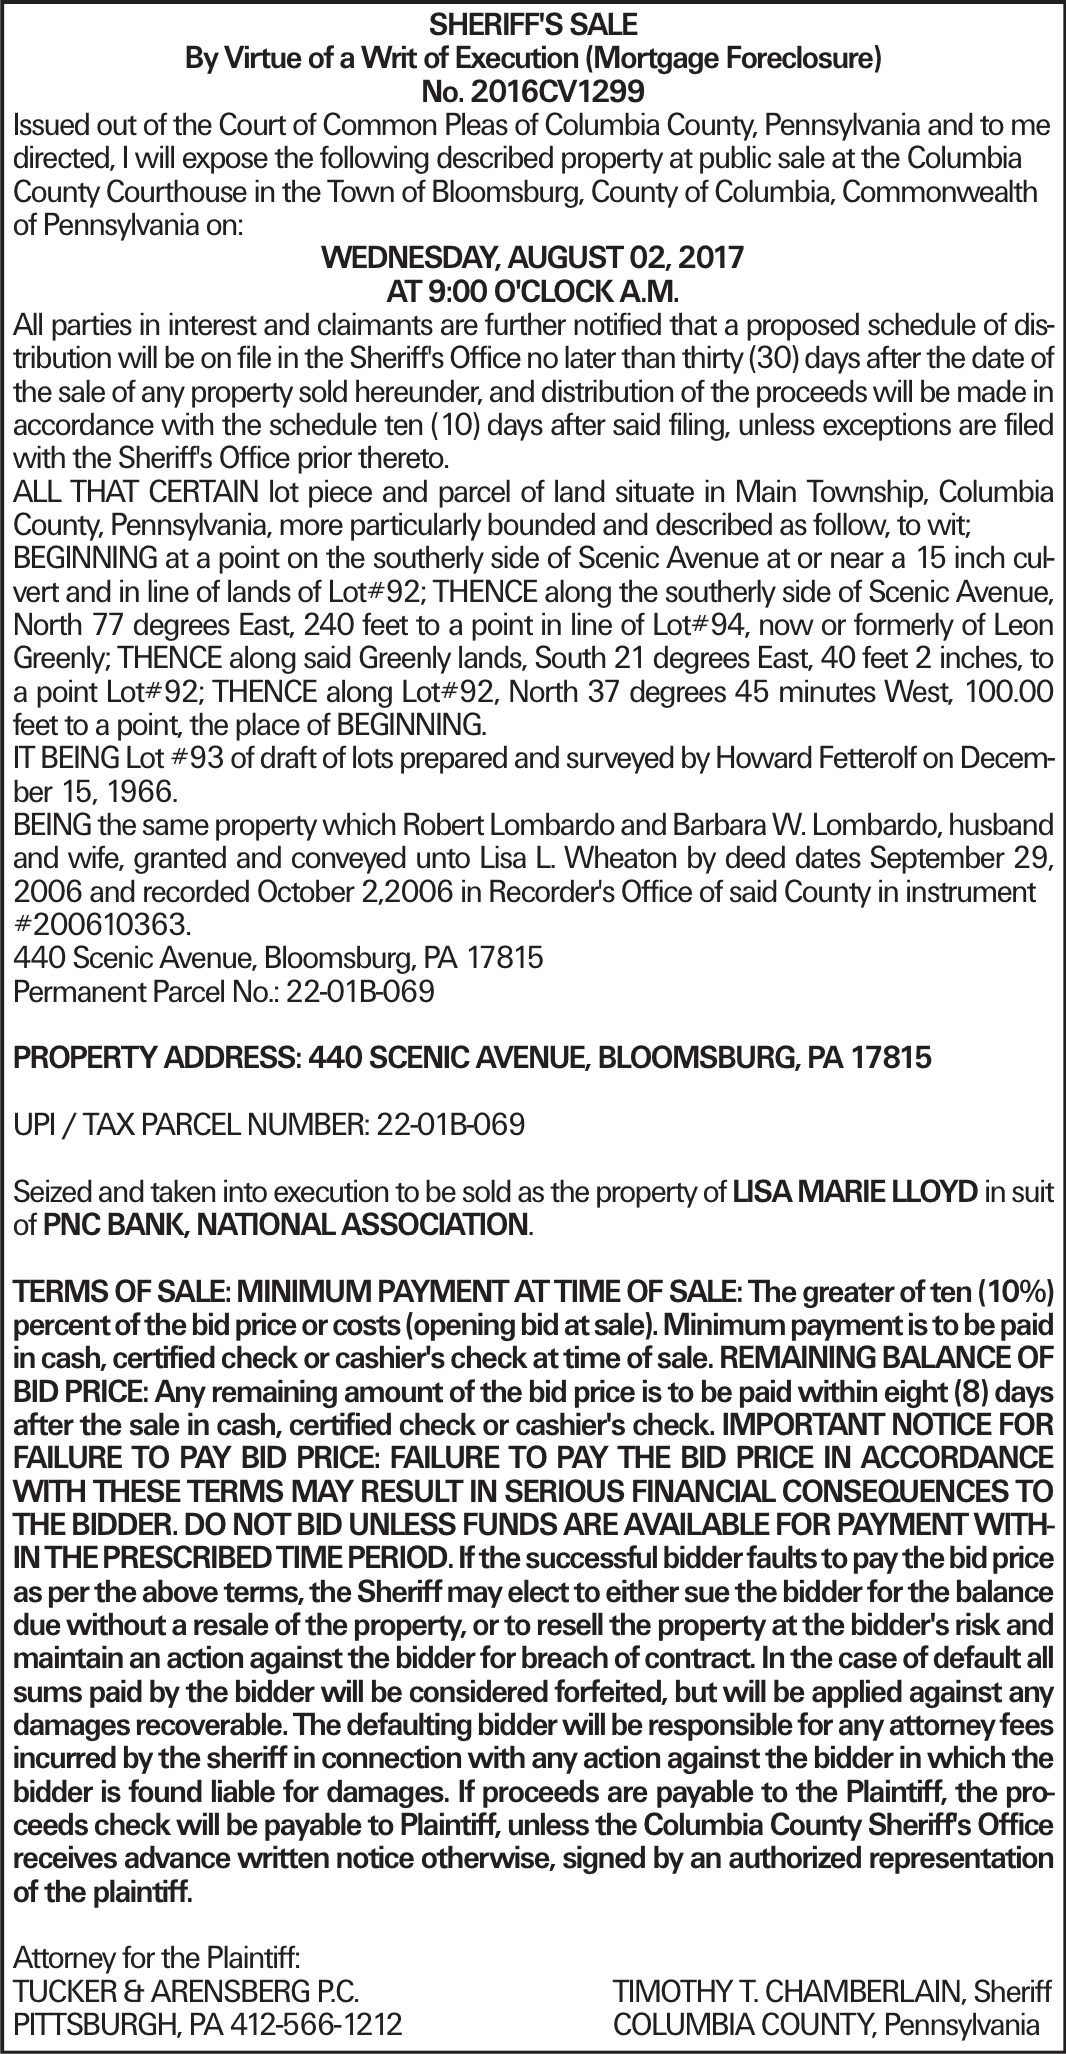 SHERIFF'S SALE By Virtue of a Writ of Execution (Mortgage Foreclosure) No. 2016CV1299 Issued out of the Court of Common Pleas of Columbia County, Pennsylvania and to me directed, I will expose the following described property at public sale at the Columbia County Courthouse in the Town of Bloomsburg, County of Columbia, Commonwealth of Pennsylvania on: WEDNESDAY, AUGUST 02, 2017 AT 9:00 O'CLOCK A.M. All parties in interest and claimants are further notified that a proposed schedule of distribution will be on file in the Sheriff's Office no later than thirty (30) days after the date of the sale of any property sold hereunder, and distribution of the proceeds will be made in accordance with the schedule ten (10) days after said filing, unless exceptions are filed with the Sheriff's Office prior thereto. ALL THAT CERTAIN lot piece and parcel of land situate in Main Township, Columbia County, Pennsylvania, more particularly bounded and described as follow, to wit; BEGINNING at a point on the southerly side of Scenic Avenue at or near a 15 inch culvert and in line of lands of Lot#92; THENCE along the southerly side of Scenic Avenue, North 77 degrees East, 240 feet to a point in line of Lot#94, now or formerly of Leon Greenly; THENCE along said Greenly lands, South 21 degrees East, 40 feet 2 inches, to a point Lot#92; THENCE along Lot#92, North 37 degrees 45 minutes West, 100.00 feet to a point, the place of BEGINNING. IT BEING Lot #93 of draft of lots prepared and surveyed by Howard Fetterolf on December 15, 1966. BEING the same property which Robert Lombardo and Barbara W. Lombardo, husband and wife, granted and conveyed unto Lisa L. Wheaton by deed dates September 29, 2006 and recorded October 2,2006 in Recorder's Office of said County in instrument #200610363. 440 Scenic Avenue, Bloomsburg, PA 17815 Permanent Parcel No.: 22-01B-069 PROPERTY ADDRESS: 440 SCENIC AVENUE, BLOOMSBURG, PA 17815 UPI / TAX PARCEL NUMBER: 22-01B-069 Seized and taken into execution to be sold as the property of LISA MARIE LLOYD in suit of PNC BANK, NATIONAL ASSOCIATION. TERMS OF SALE: MINIMUM PAYMENT AT TIME OF SALE: The greater of ten (10%) percent of the bid price or costs (opening bid at sale). Minimum payment is to be paid in cash, certified check or cashier's check at time of sale. REMAINING BALANCE OF BID PRICE: Any remaining amount of the bid price is to be paid within eight (8) days after the sale in cash, certified check or cashier's check. IMPORTANT NOTICE FOR FAILURE TO PAY BID PRICE: FAILURE TO PAY THE BID PRICE IN ACCORDANCE WITH THESE TERMS MAY RESULT IN SERIOUS FINANCIAL CONSEQUENCES TO THE BIDDER. DO NOT BID UNLESS FUNDS ARE AVAILABLE FOR PAYMENT WITHIN THE PRESCRIBED TIME PERIOD. If the successful bidder faults to pay the bid price as per the above terms, the Sheriff may elect to either sue the bidder for the balance due without a resale of the property, or to resell the property at the bidder's risk and maintain an action against the bidder for breach of contract. In the case of default all sums paid by the bidder will be considered forfeited, but will be applied against any damages recoverable. The defaulting bidder will be responsible for any attorney fees incurred by the sheriff in connection with any action against the bidder in which the bidder is found liable for damages. If proceeds are payable to the Plaintiff, the proceeds check will be payable to Plaintiff, unless the Columbia County Sheriff's Office receives advance written notice otherwise, signed by an authorized representation of the plaintiff. Attorney for the Plaintiff: TUCKER & ARENSBERG P.C.	TIMOTHY T. CHAMBERLAIN, Sheriff PITTSBURGH, PA 412-566-1212	COLUMBIA COUNTY, Pennsylvania